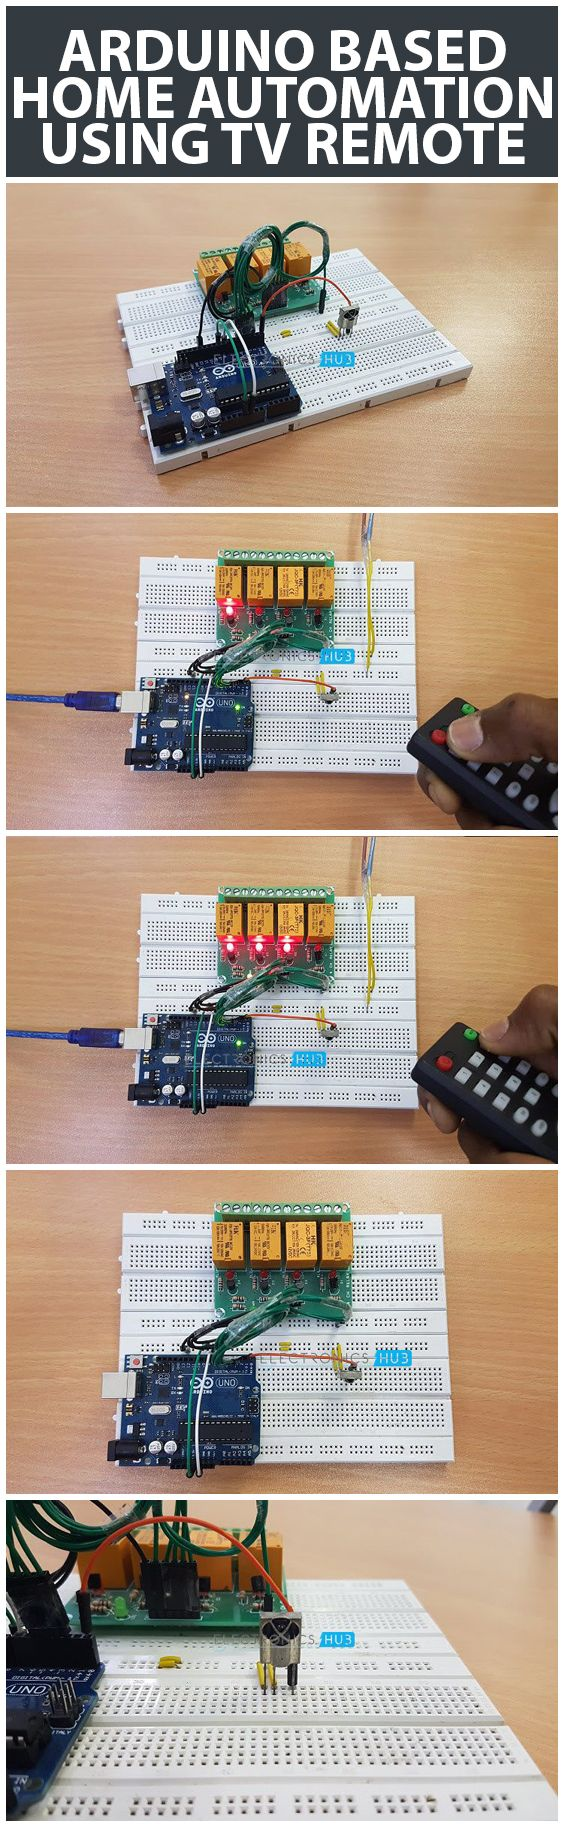 208 Best Smart Home Images On Pinterest Arduino Projects Diy Wiring Hall Effect Sensor Switch Magnet Detector Module 14corecom Based Automation Using Tv Remote Is A Simple Project Where An Old